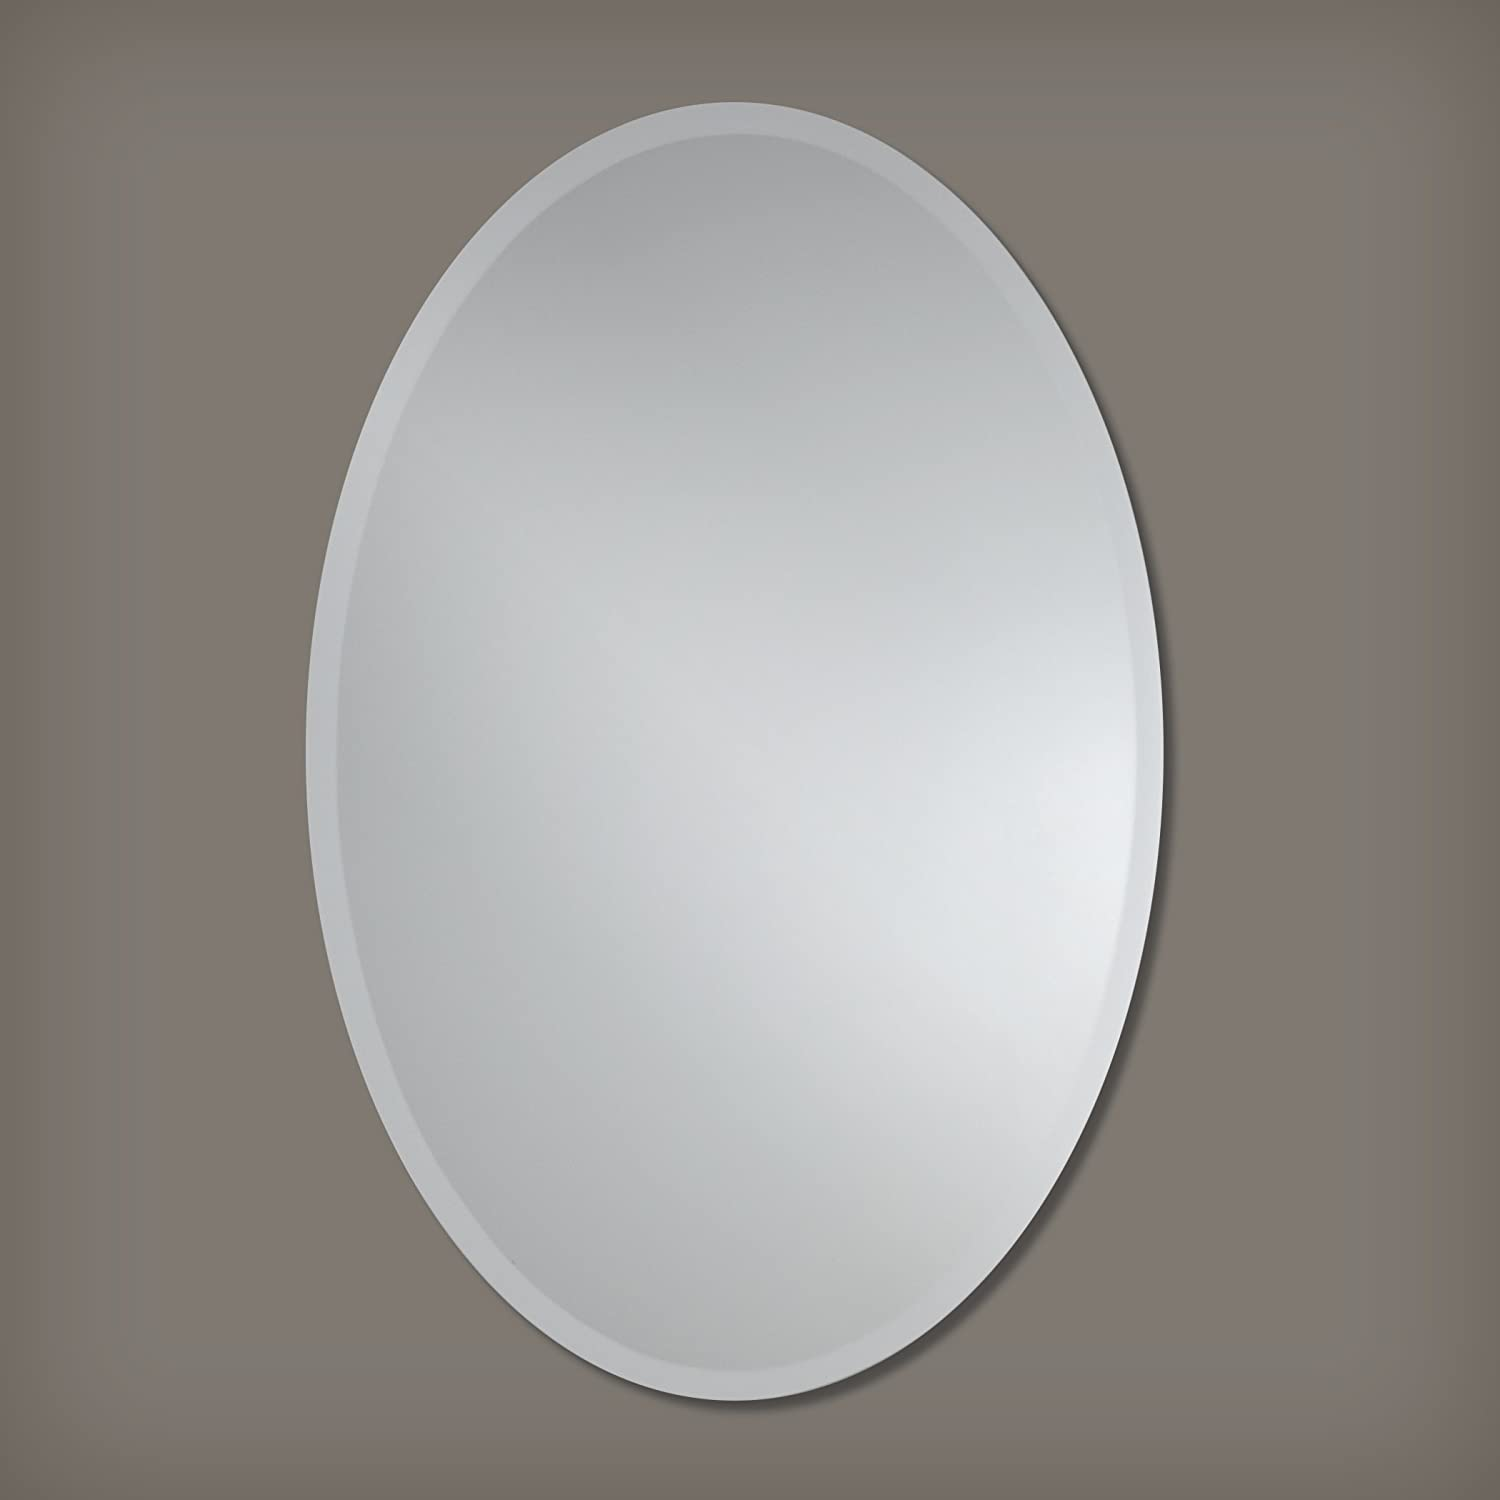 Large Frameless Beveled Oval Wall Mirror Bathroom, Vanity, Bedroom Mirror 28-inch x 40-inch